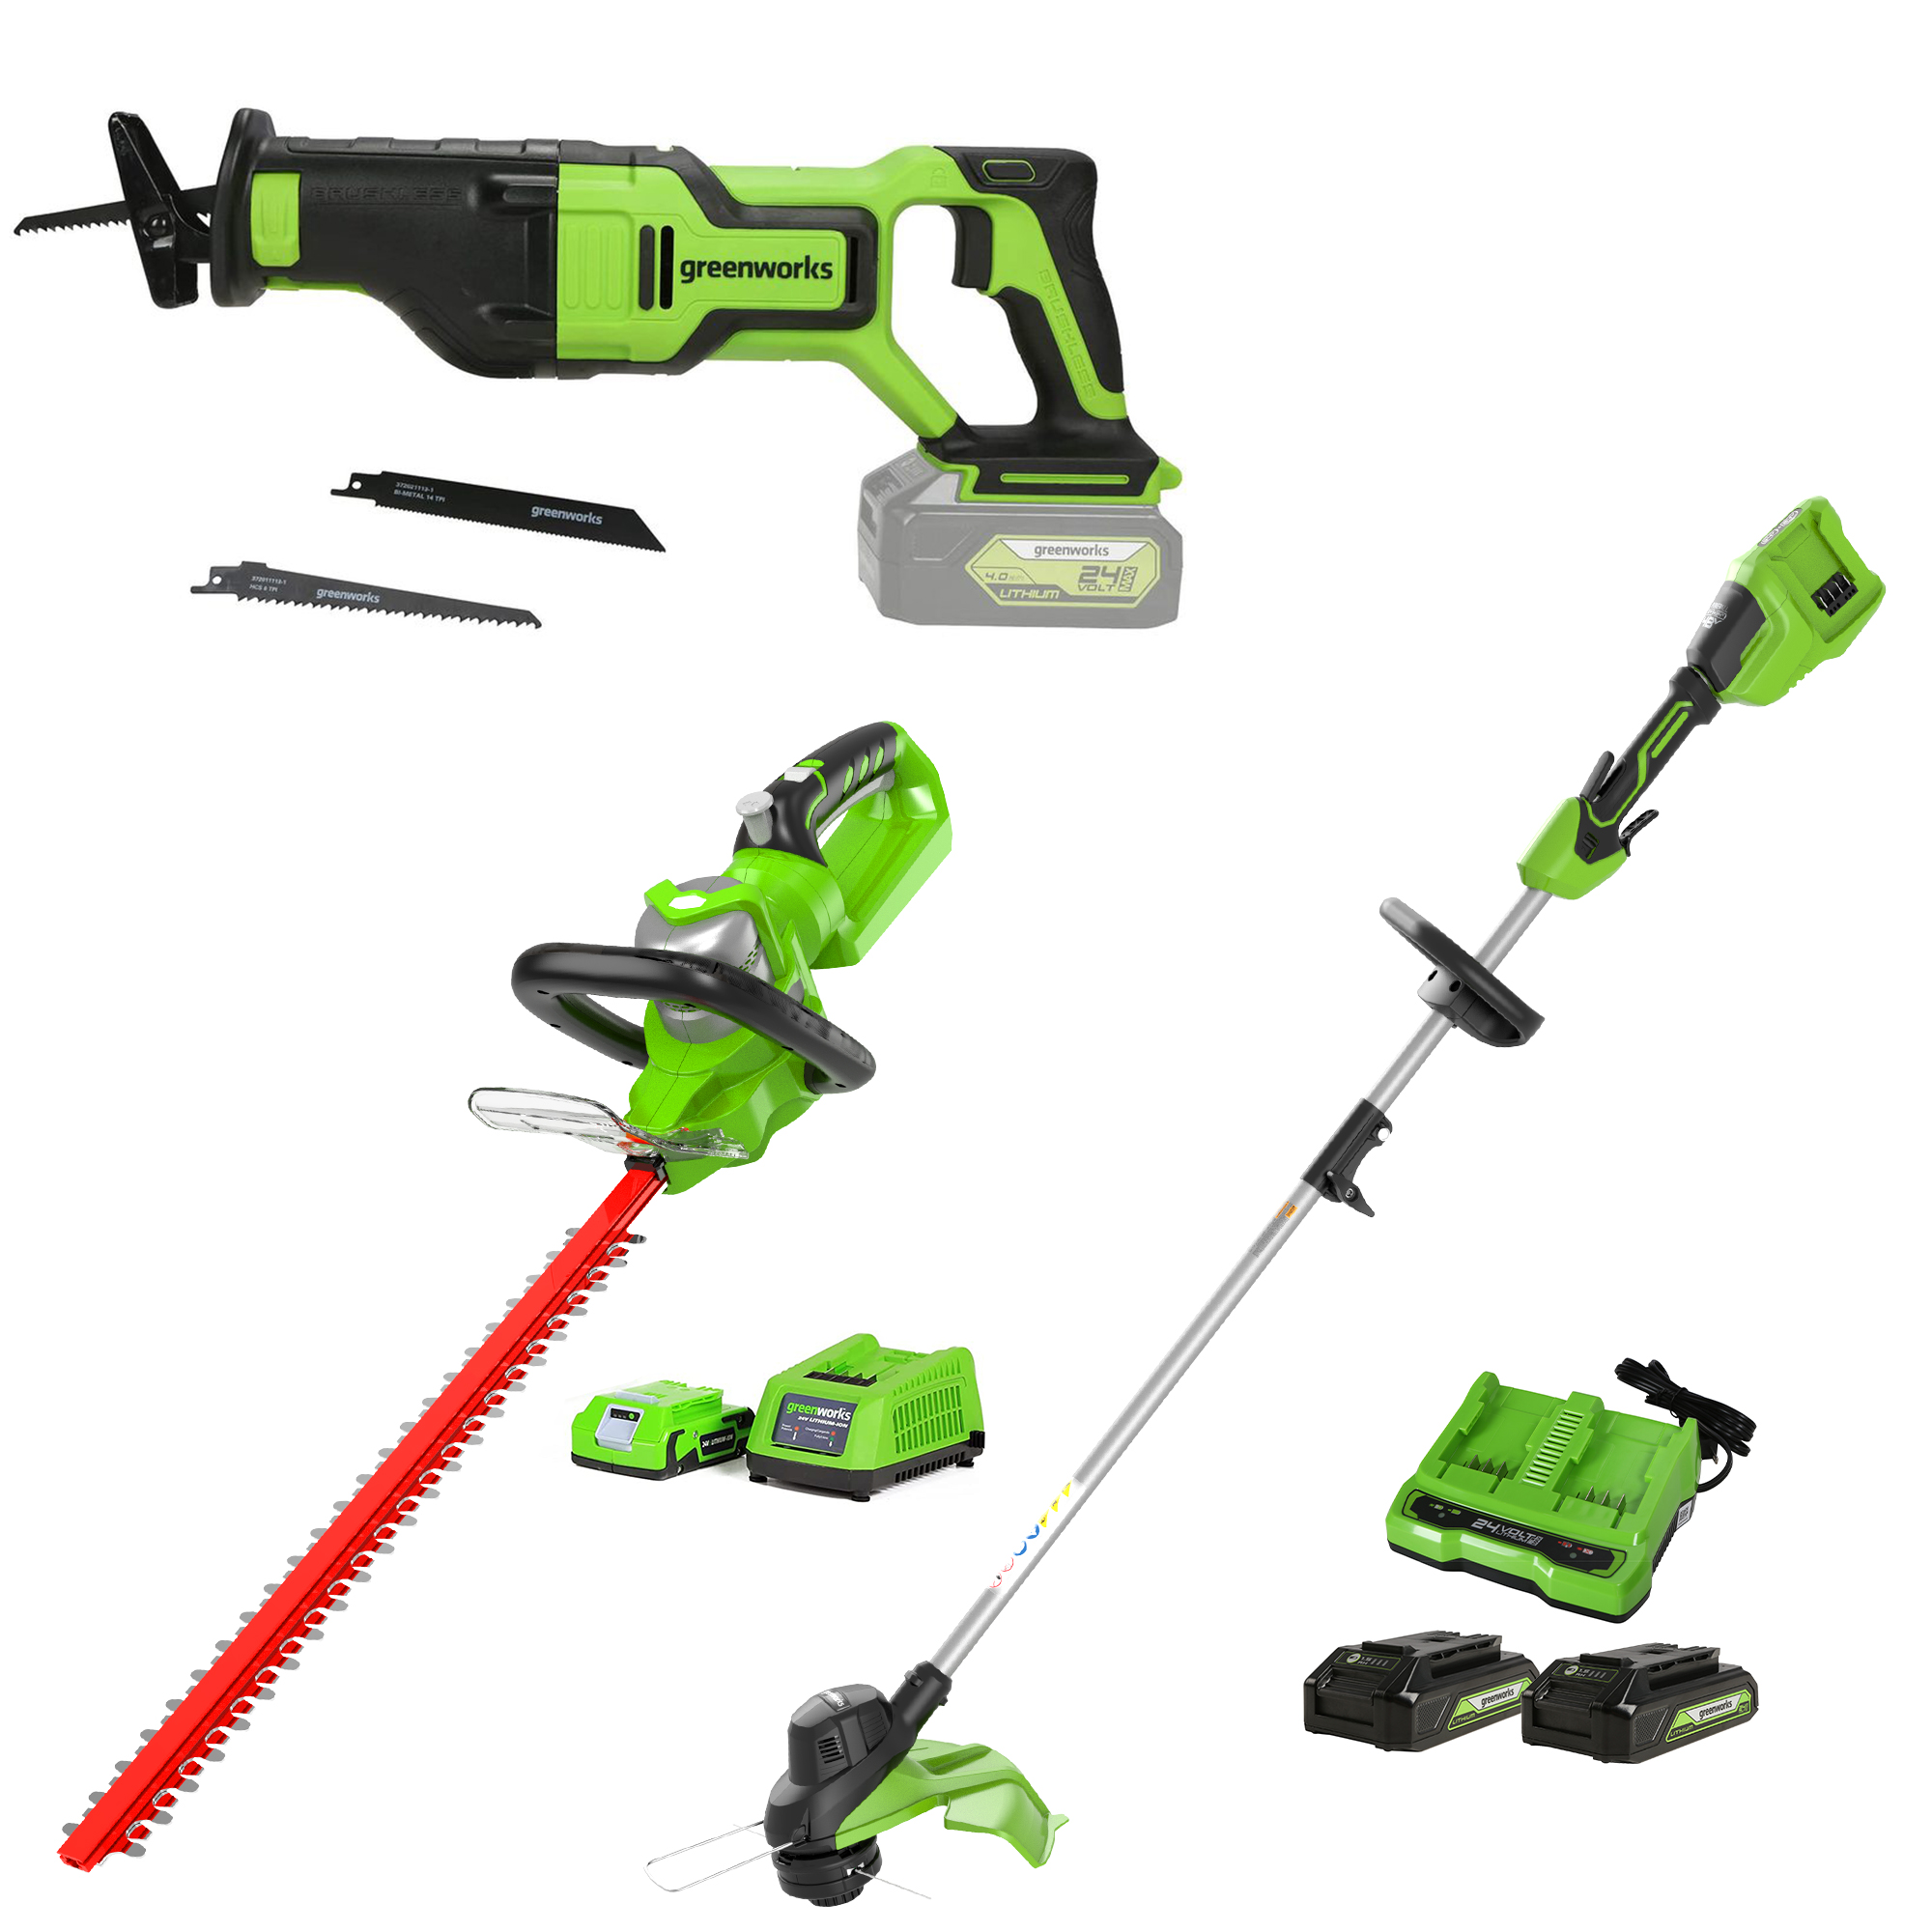 2 x 24V 48V 15-Inch TORQDRIVE String Trimmer, 24V 22-Inch Hedge Trimmer and 24V Brushless Cordless Reciprocating Saw Was: $229.99 Now: $195.50.